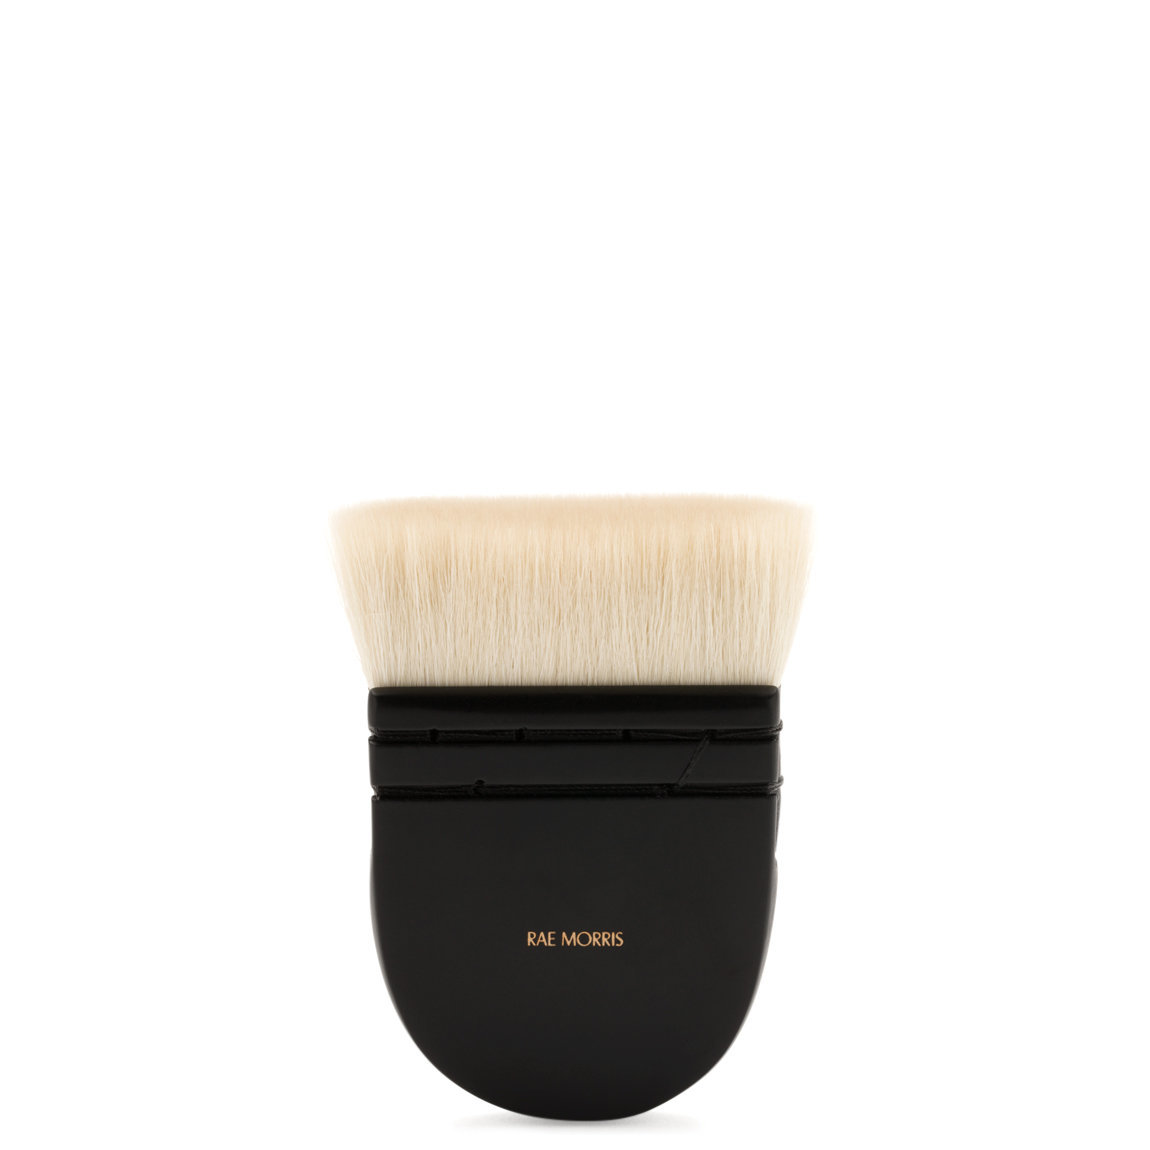 Rae Morris Jishaku Brush 26: Radiance  product smear.